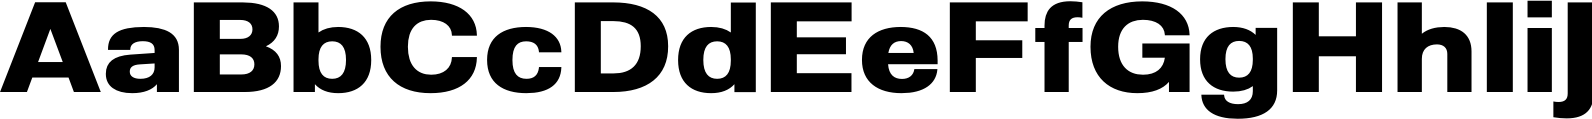 Molde SemiExpanded Bold Font